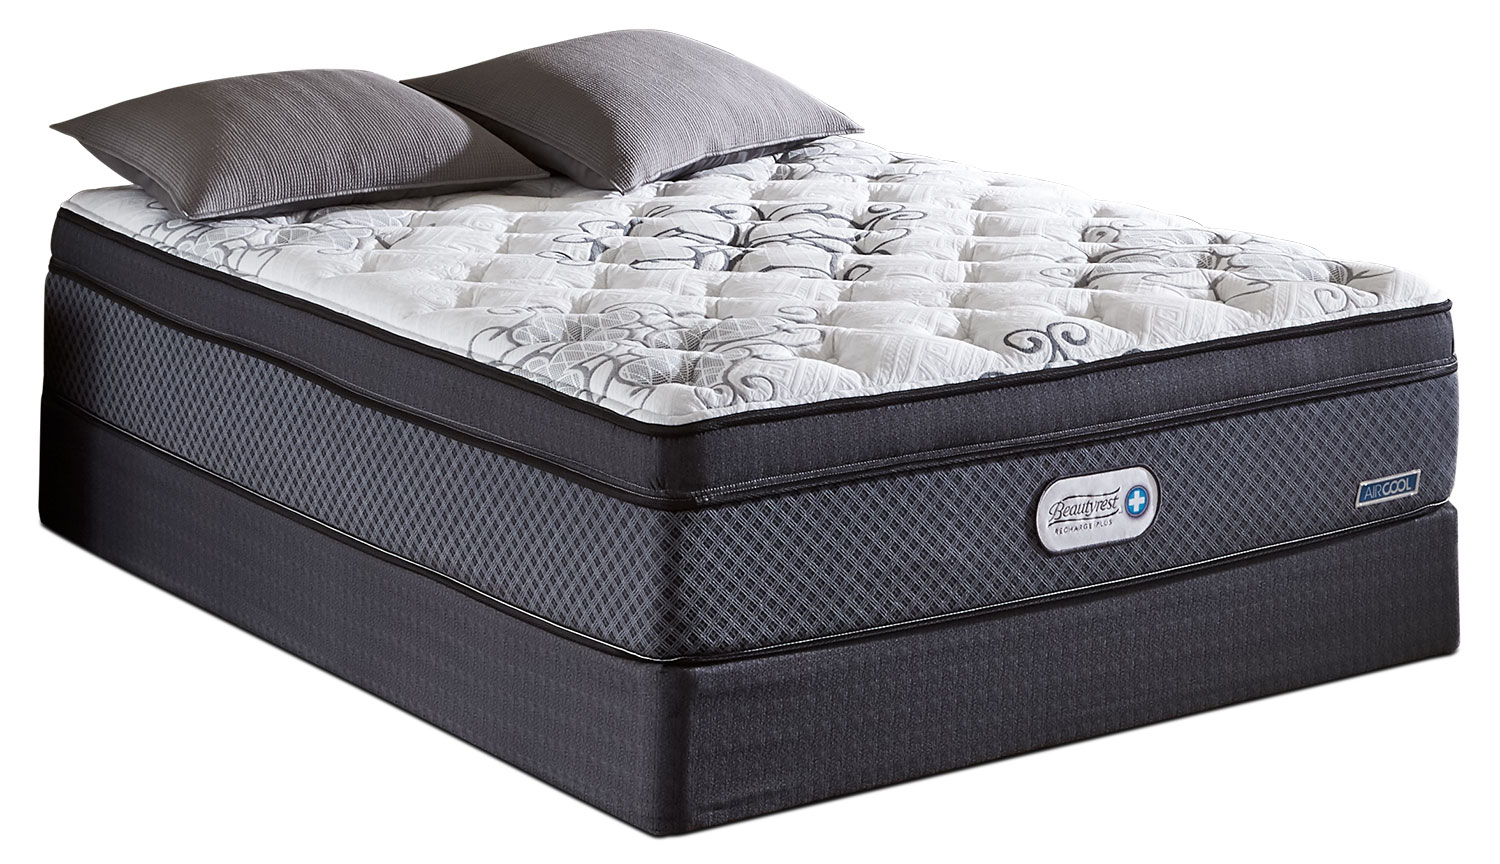 Beautyrest Recharge Plus Covington Euro-Top Luxury Firm King Mattress Set